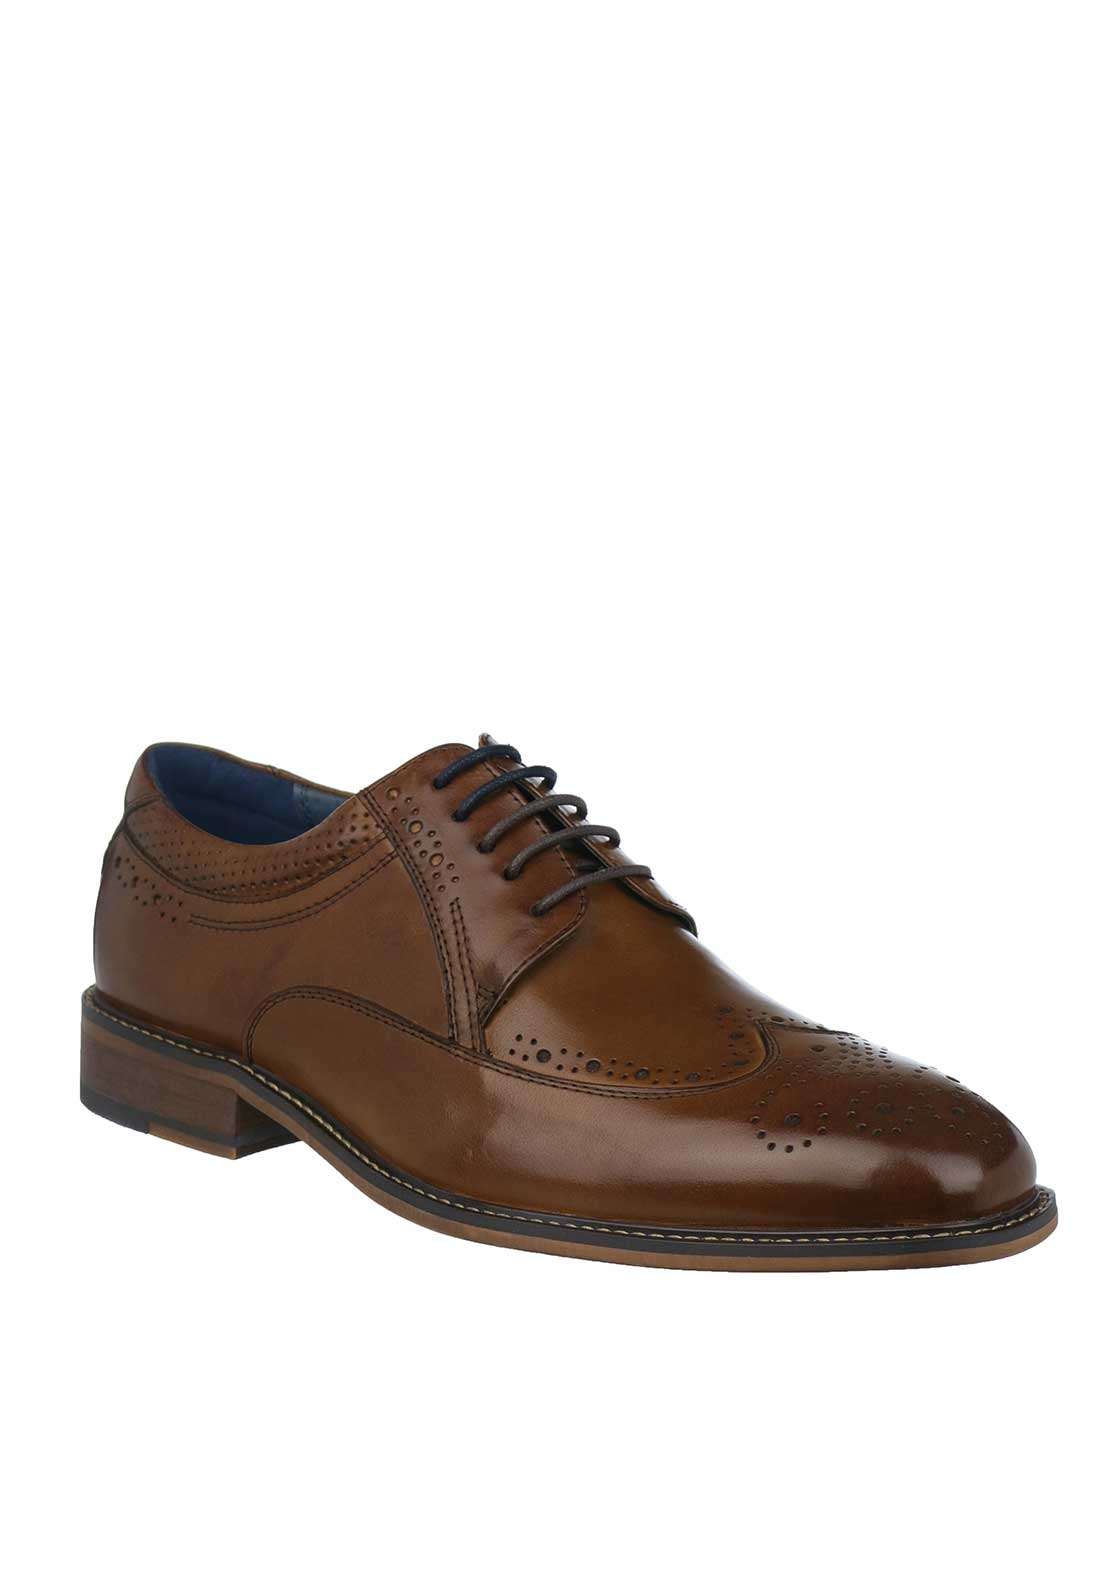 Tommy Bowe Olimpico Leather Brogue Shoes, Tan